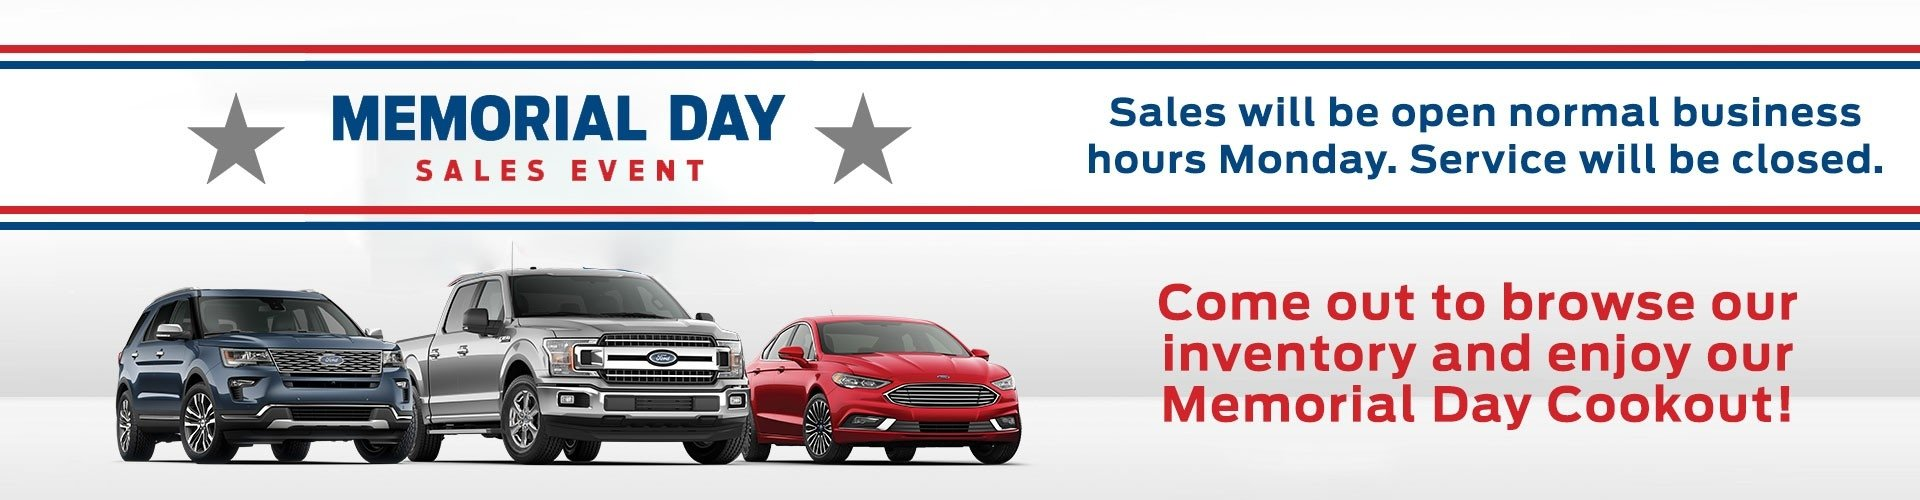 memorial day sales event with business hours